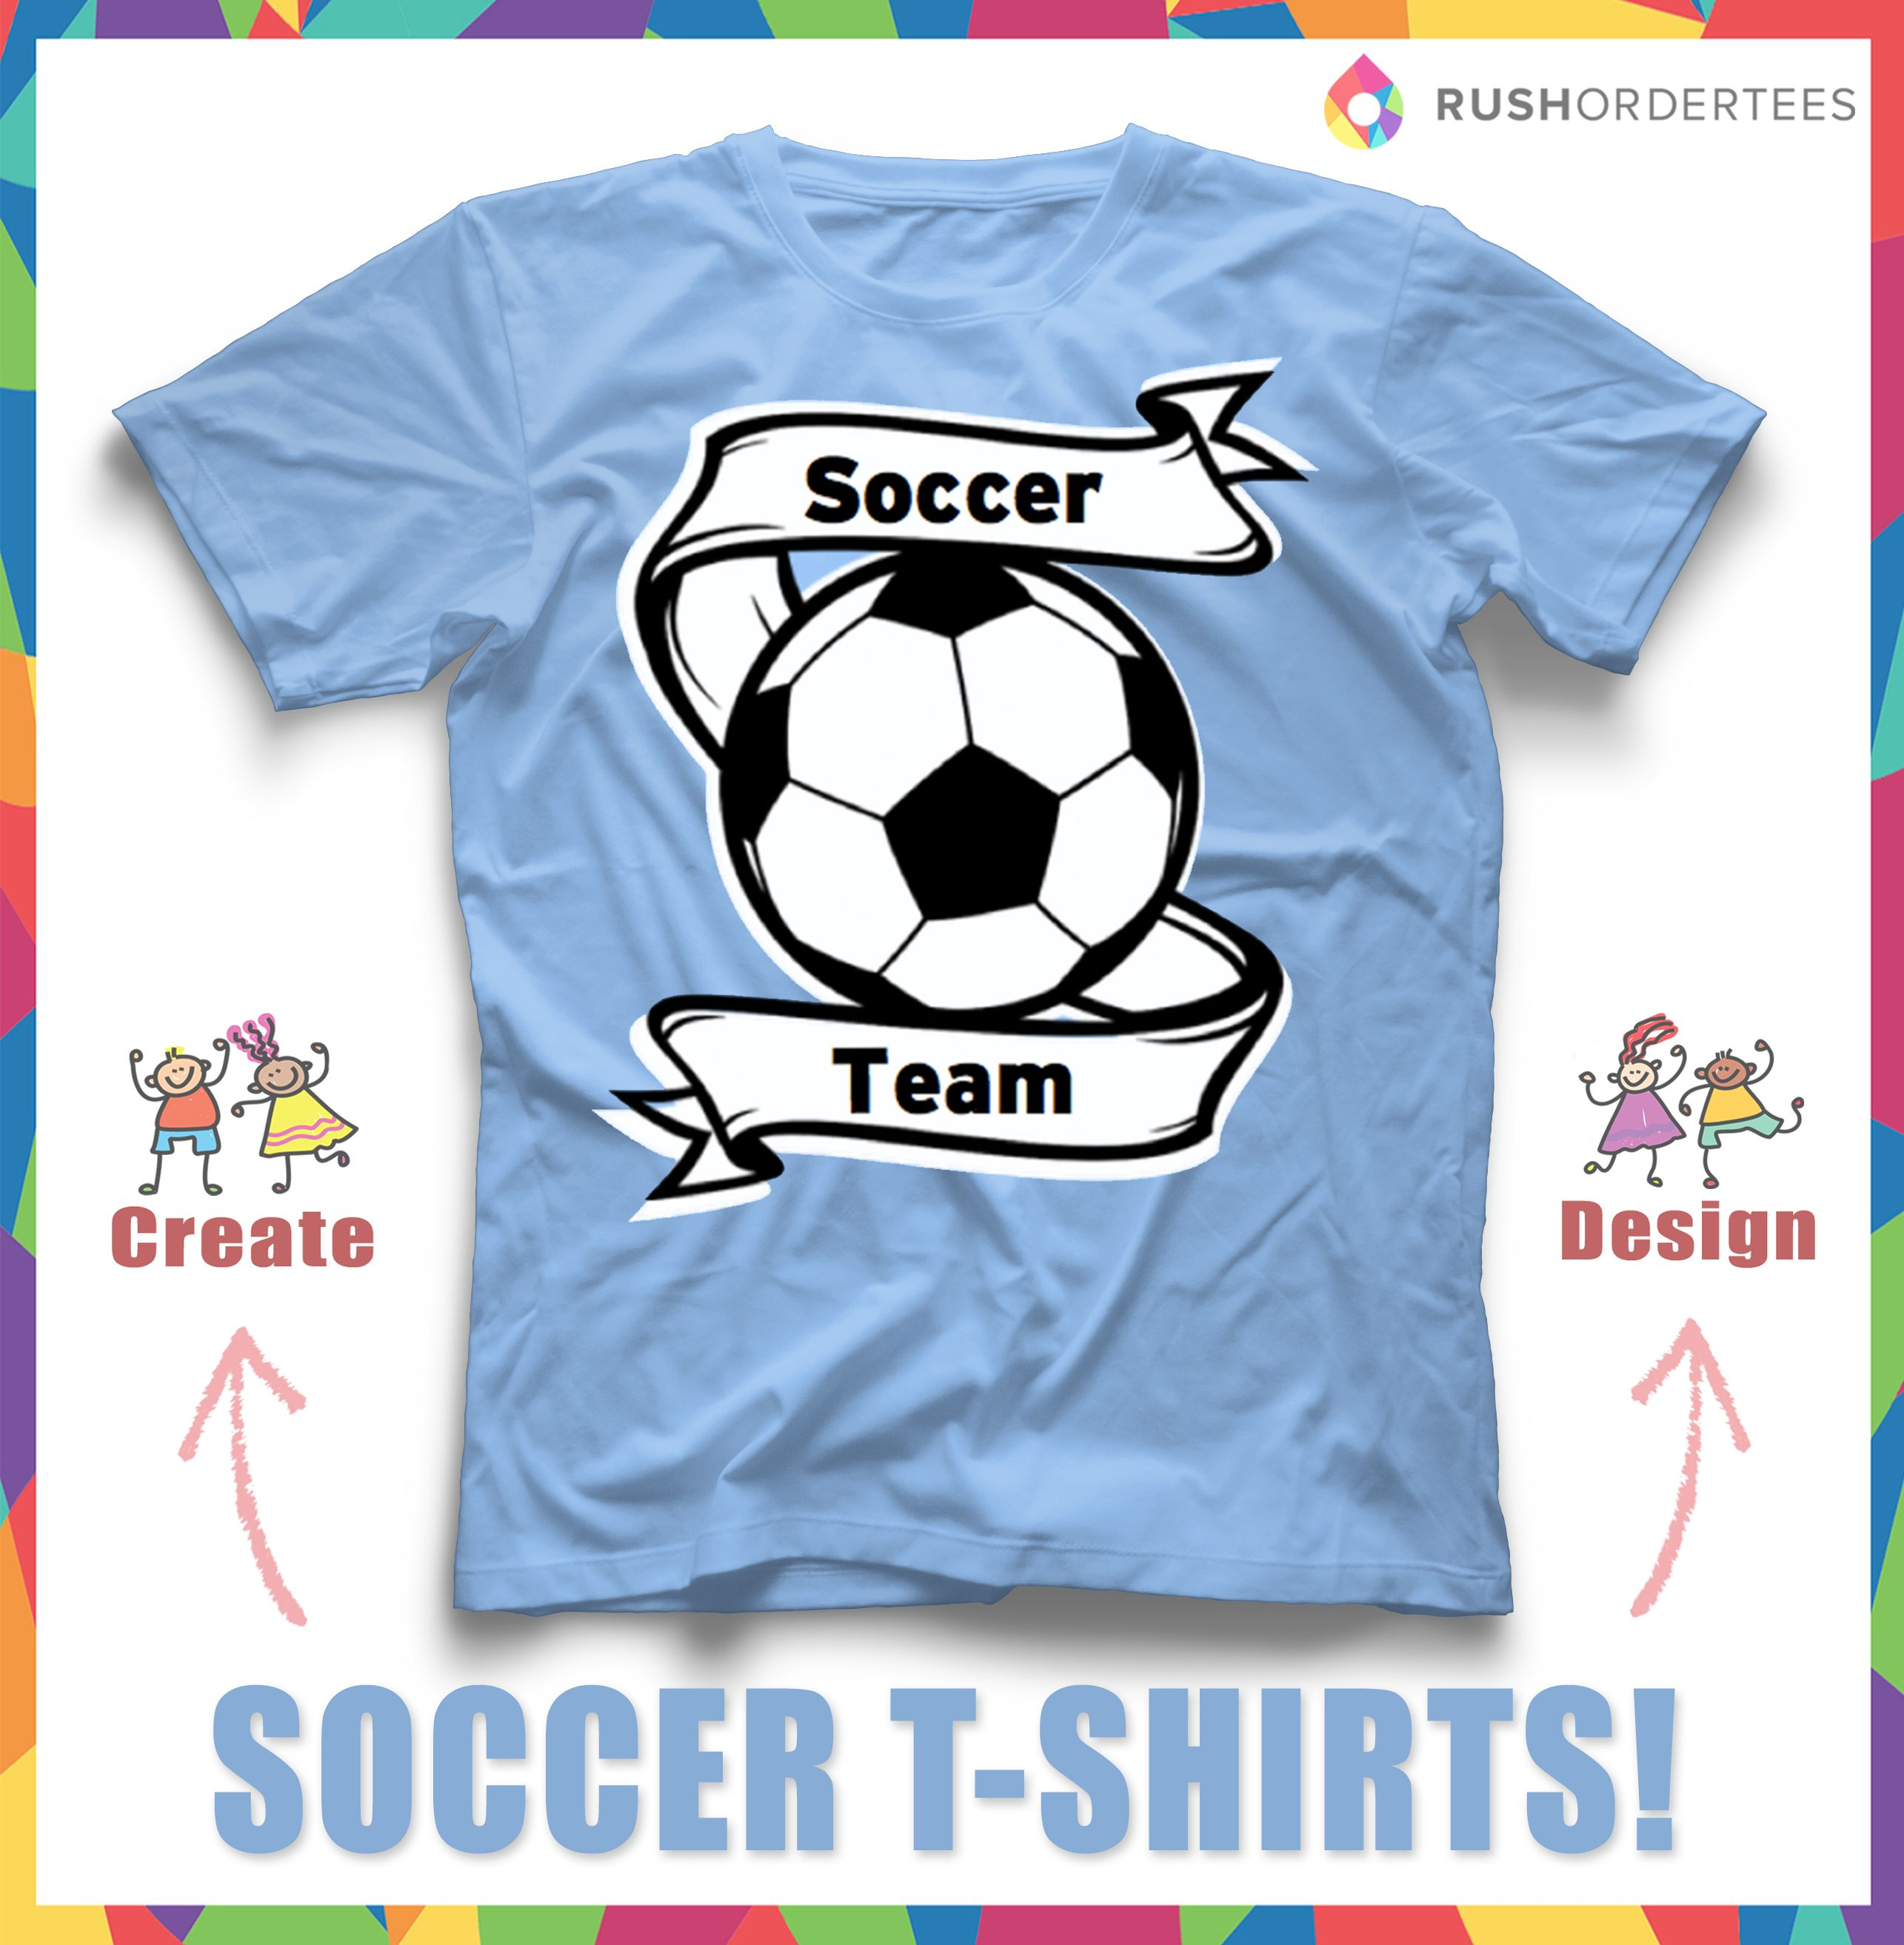 also great for tshirt design ideas - Soccer T Shirt Design Ideas